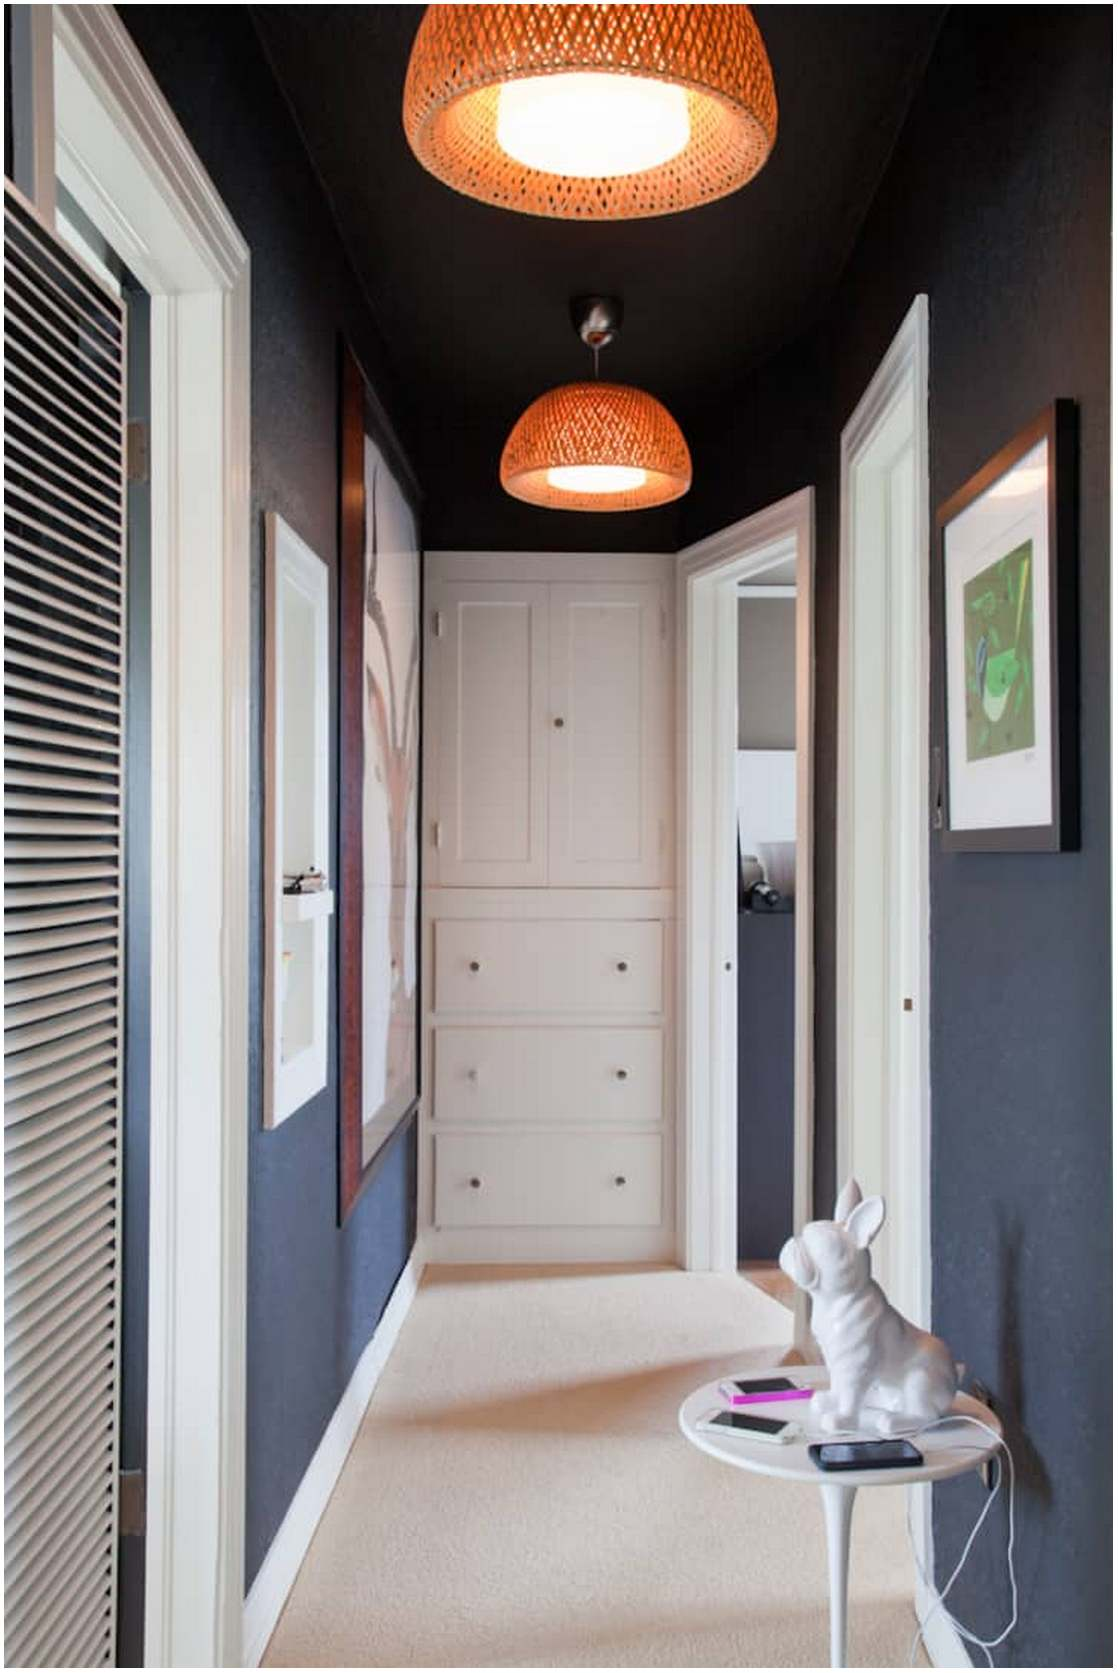 Sprucing Up Your Hallway - Go to the dark side